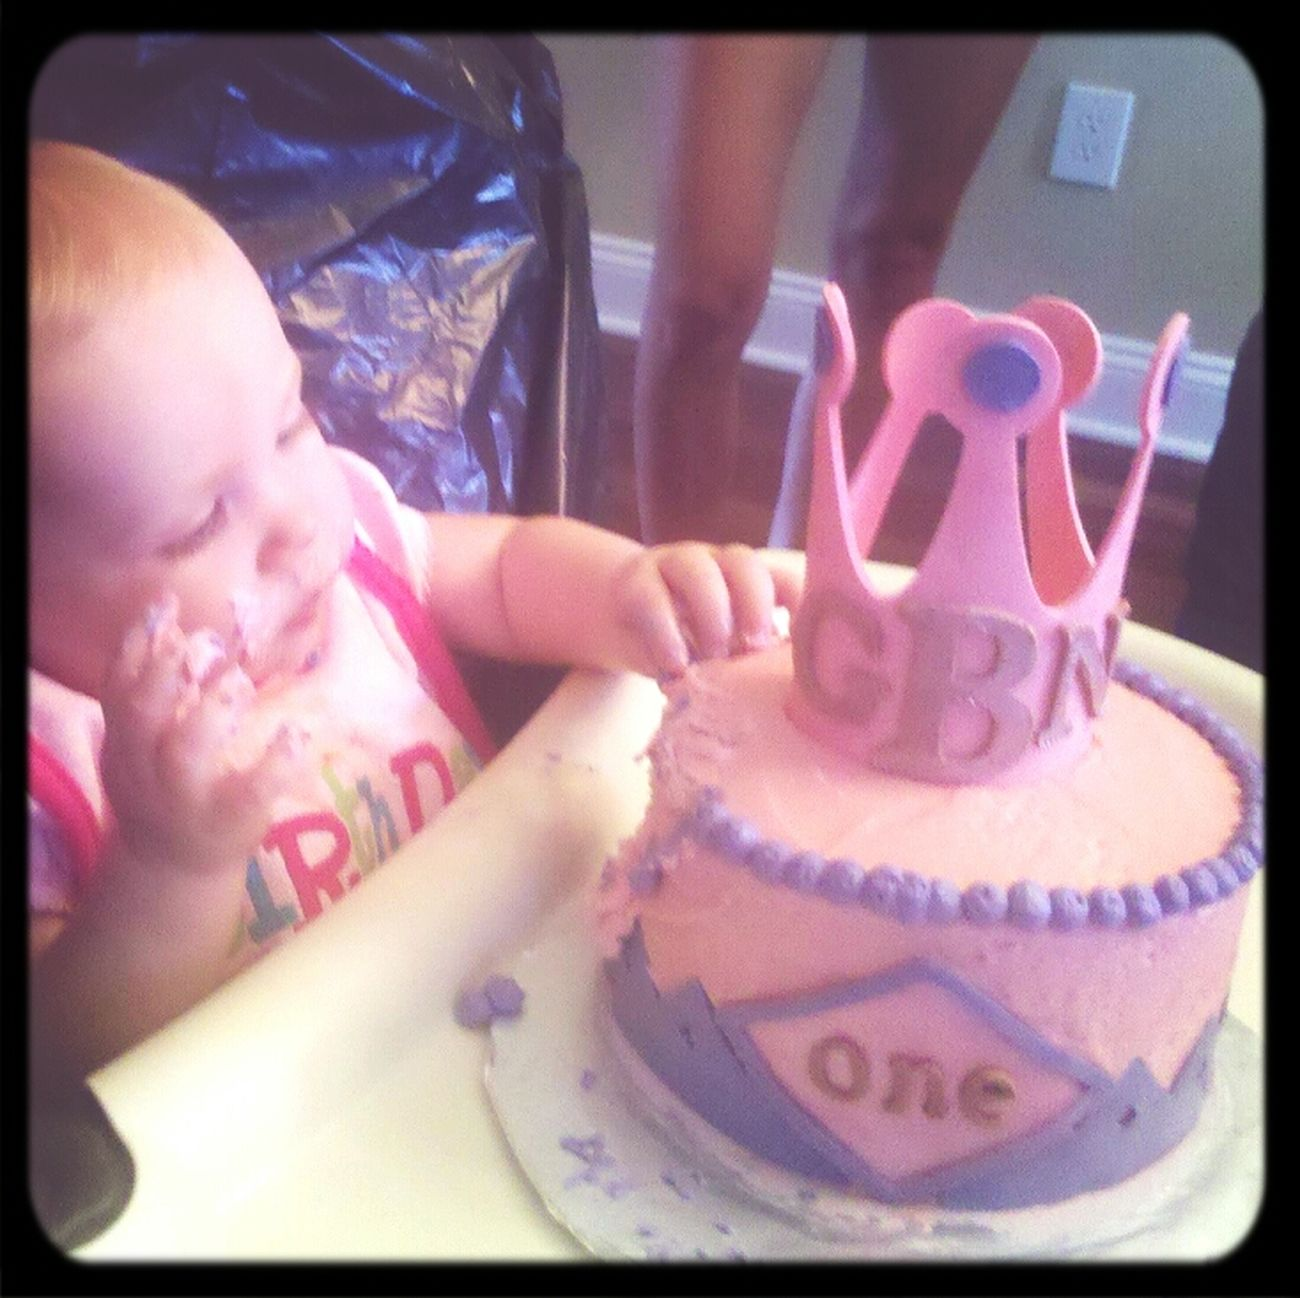 Grace enjoying her smash cake! Pink Smash Cake Cakes Love & Tiers